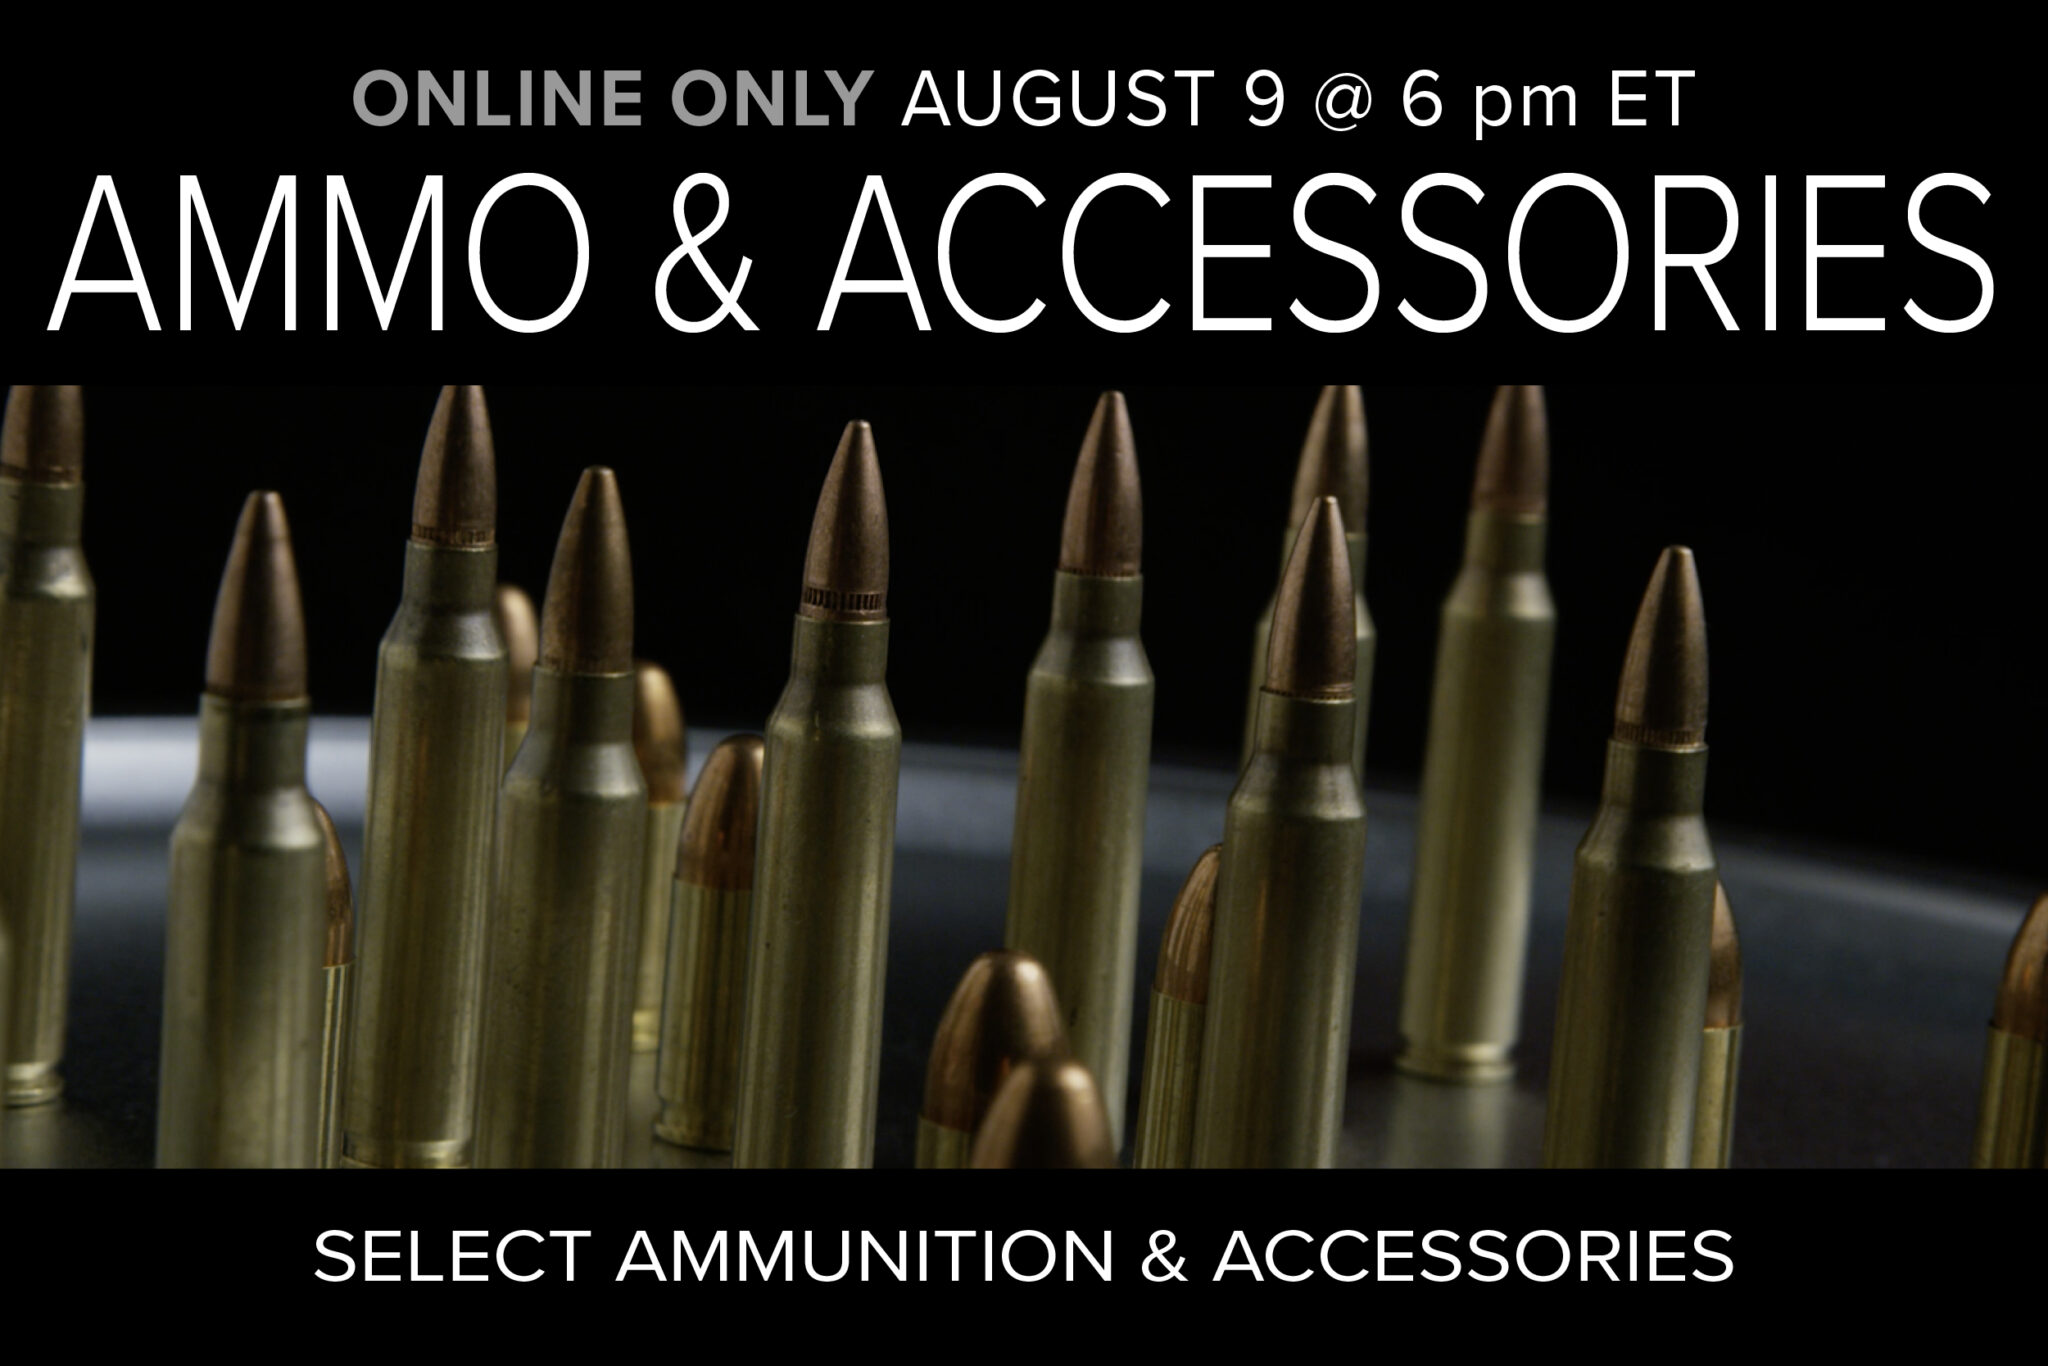 080921-Ammo-previewtile-01